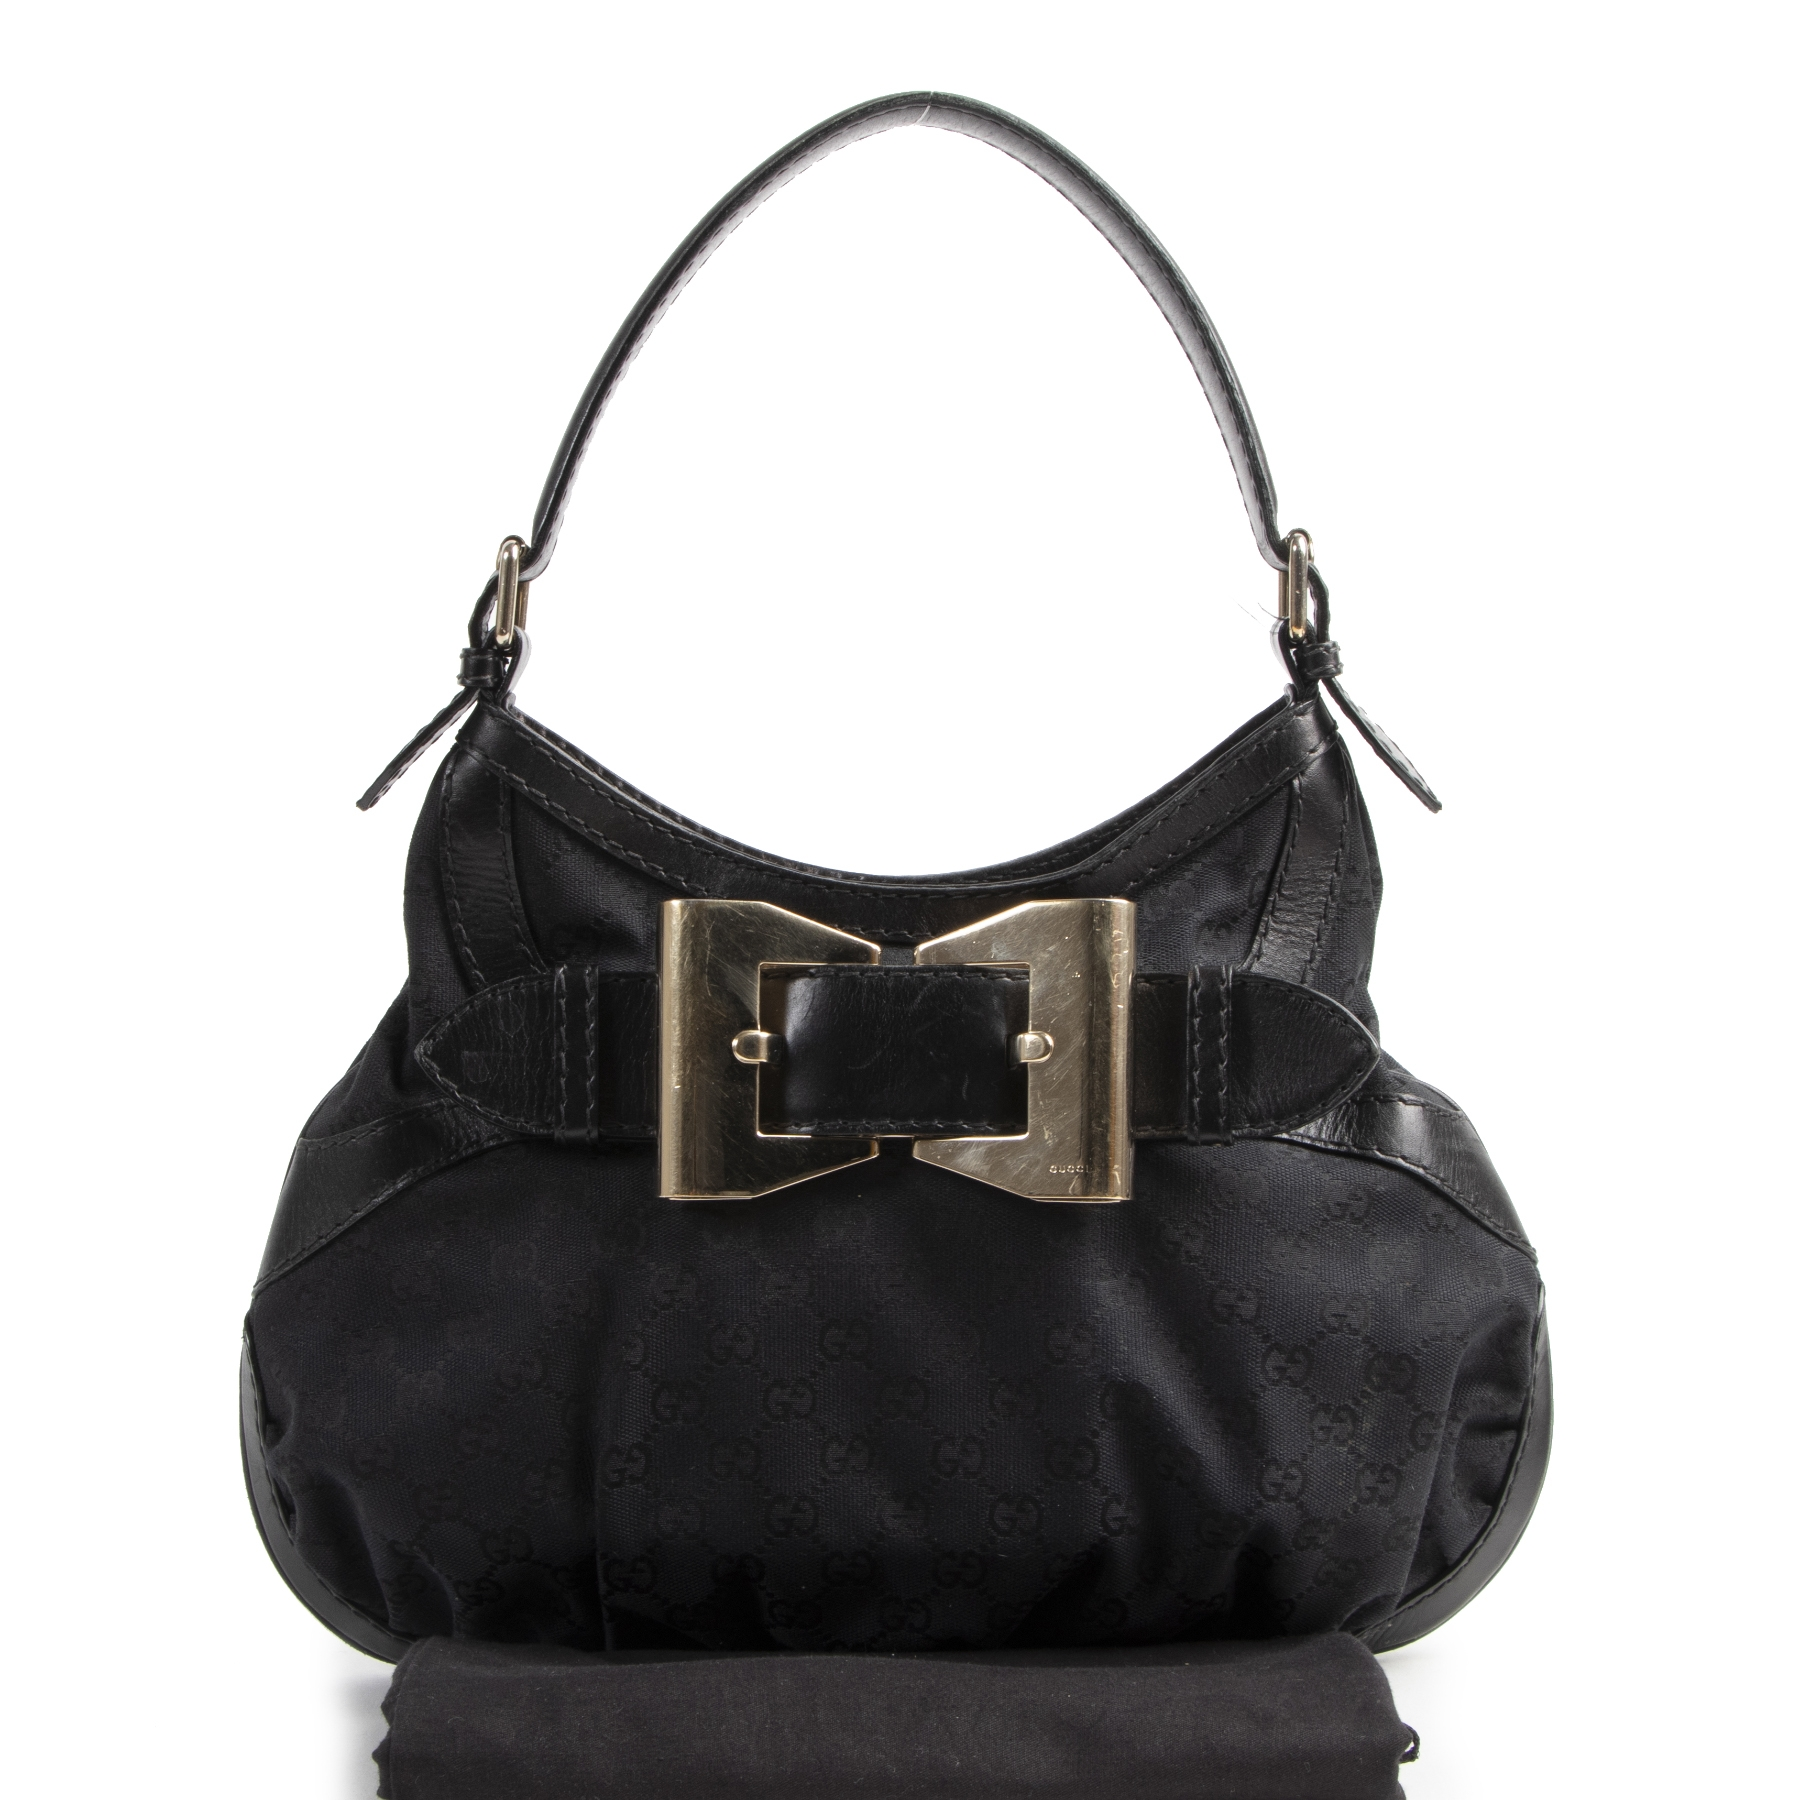 Authentic secondhand Gucci Black Queen Hobo Shoulder Bag designer bags fashion luxury vintage webshop safe secure online shopping